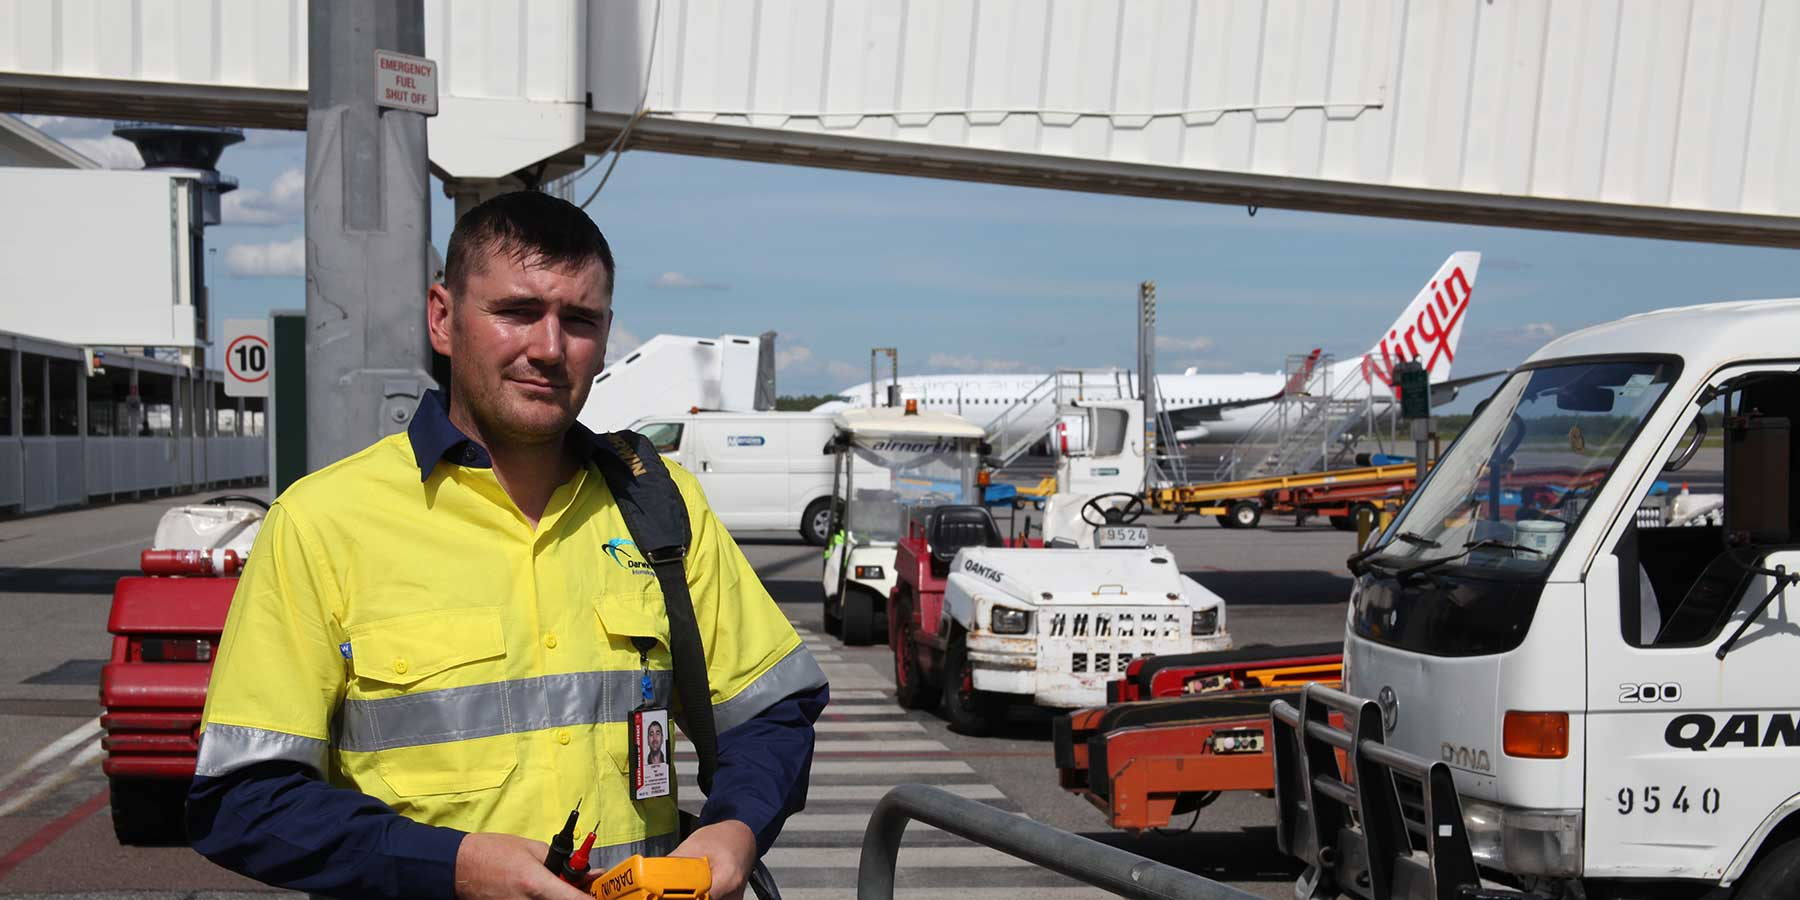 Workman standing beside vehicles at airport